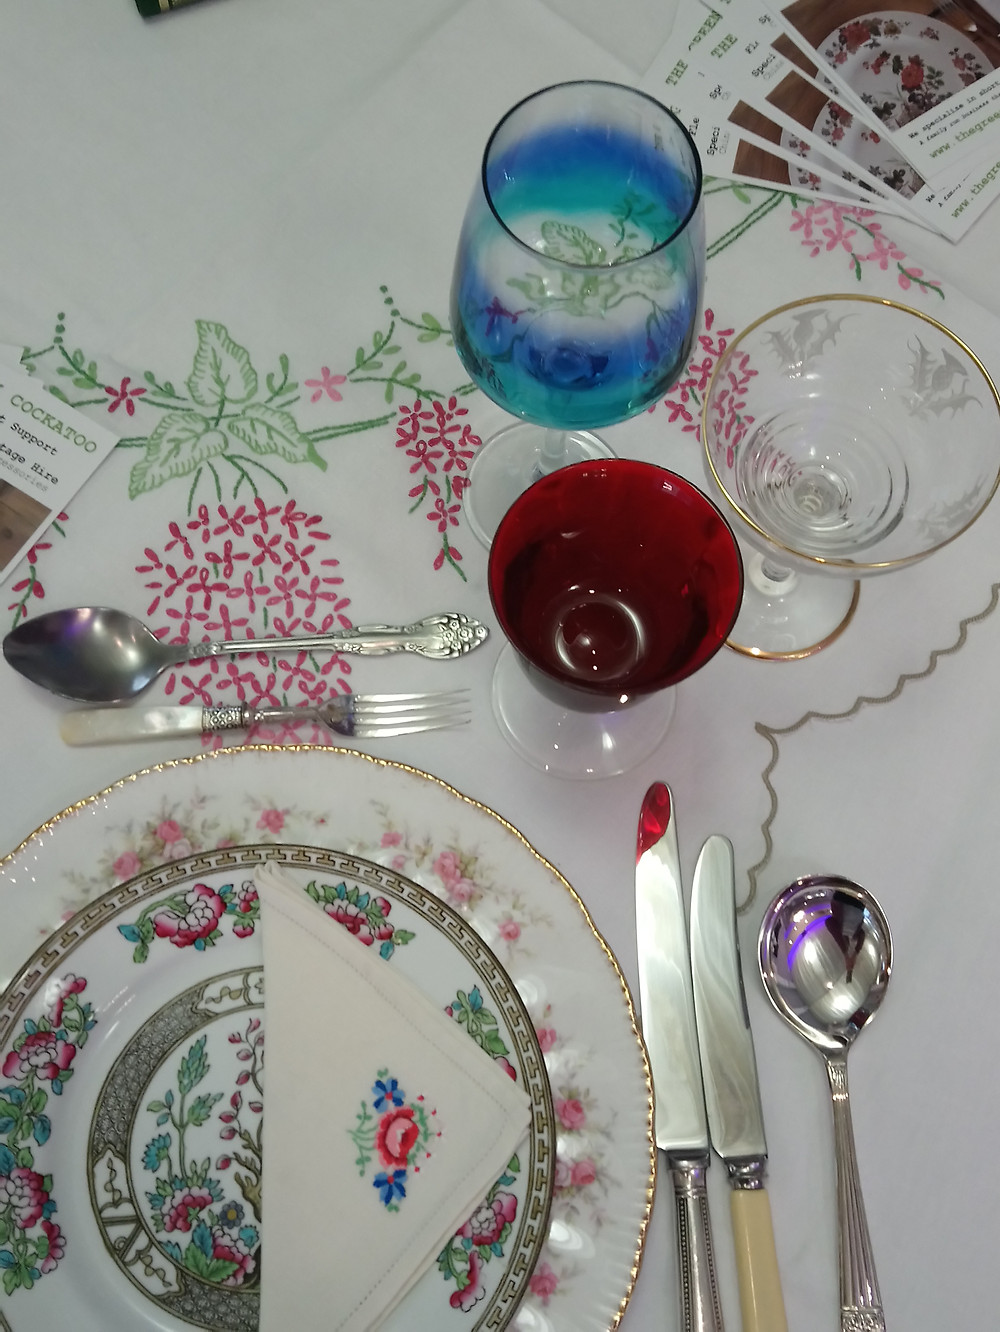 Mismatched china, cutlery and glass